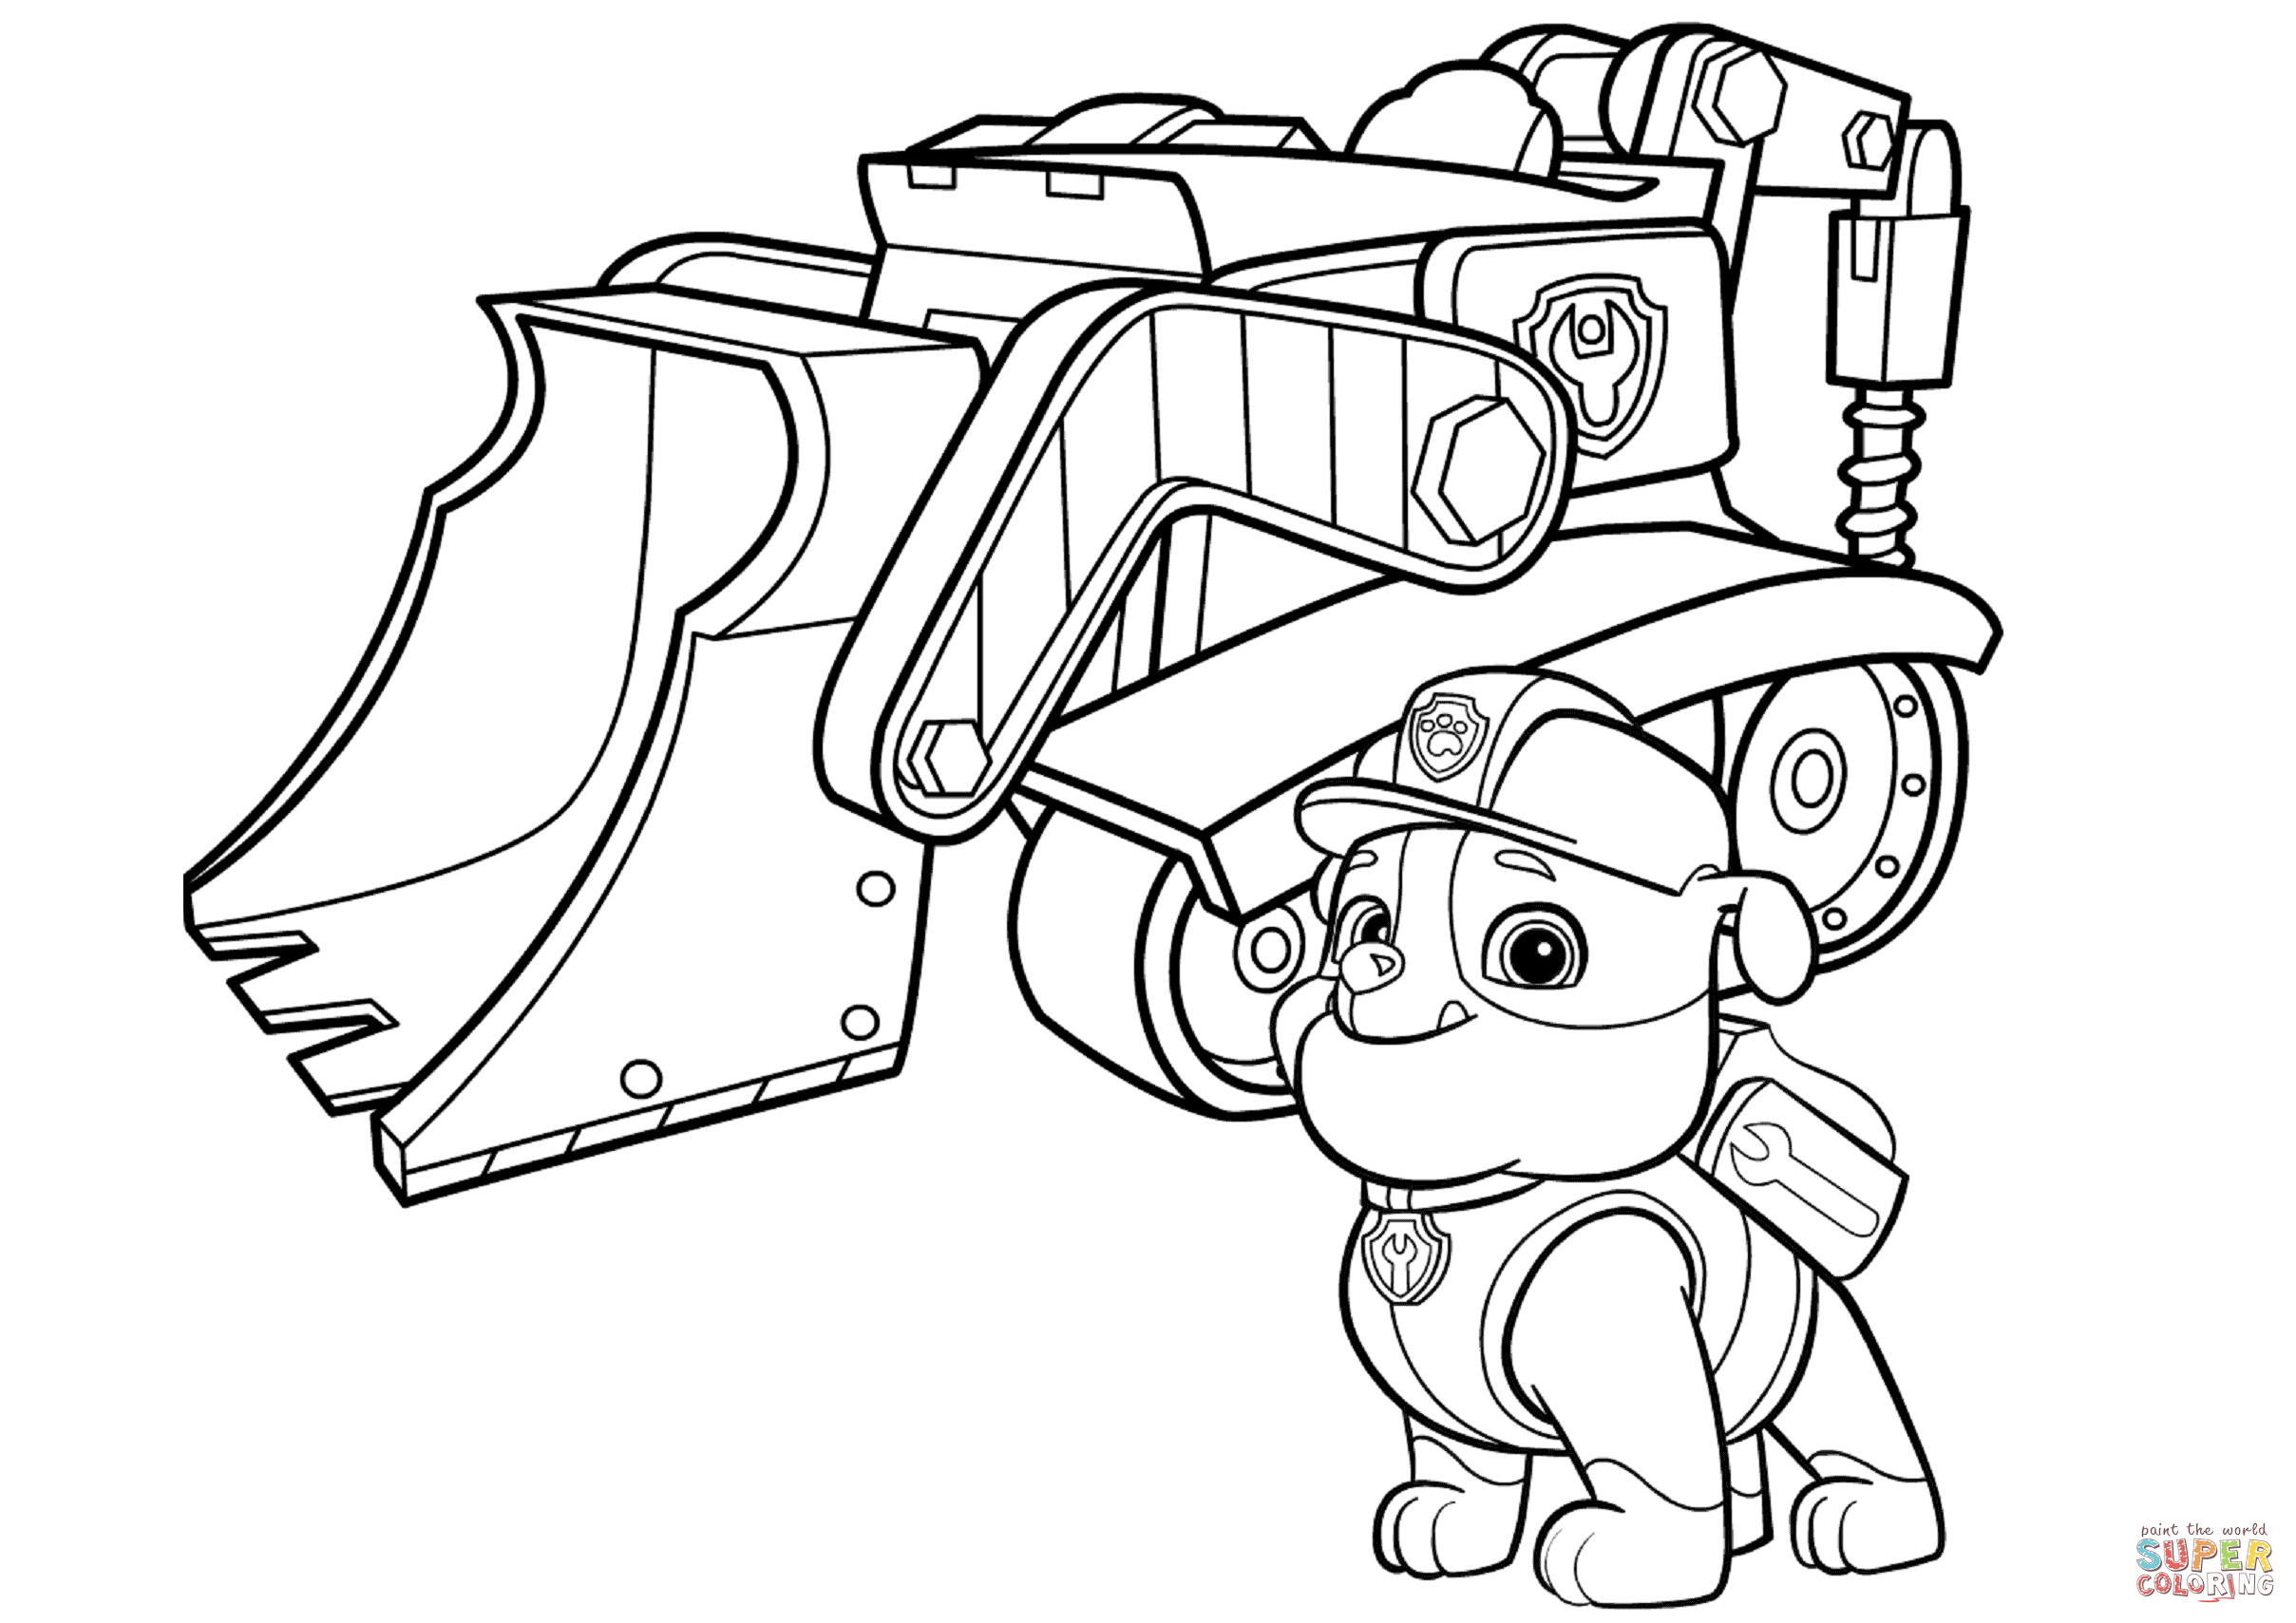 paw patrol coloring outline chase paw patrol coloring lesson kids coloring page patrol coloring outline paw